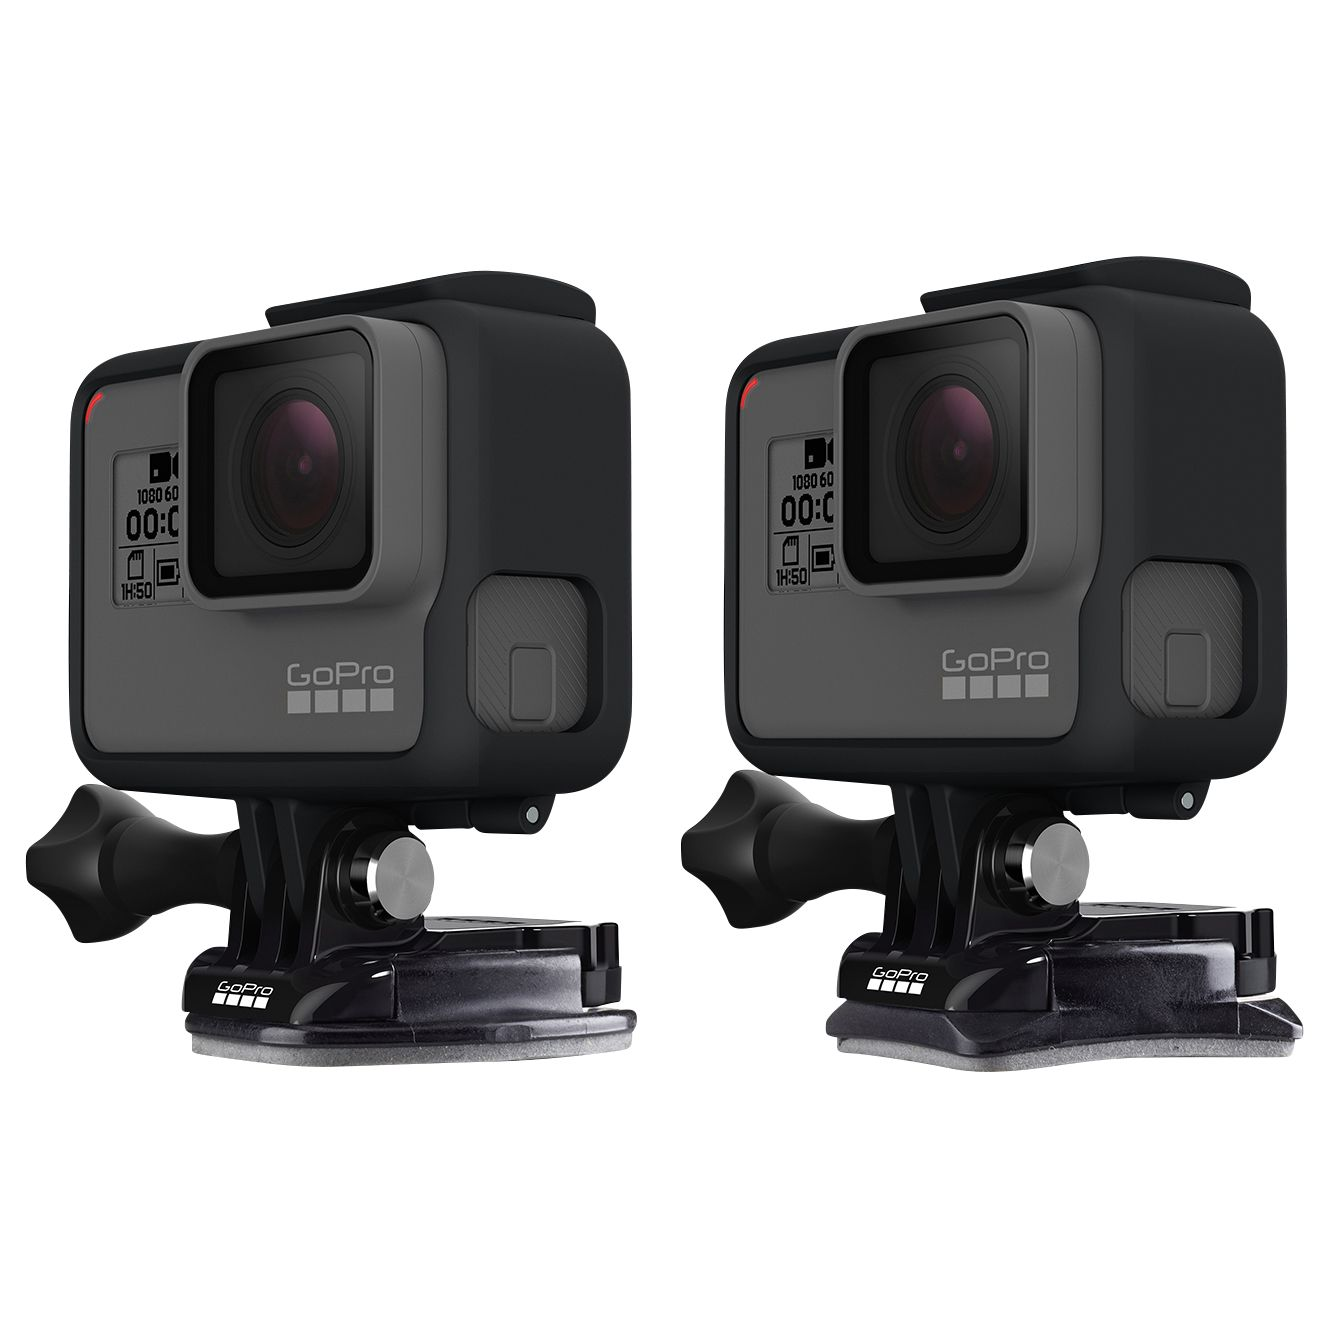 Gopro GoPro Flat and Curve Adhesive Mount for All GoPros